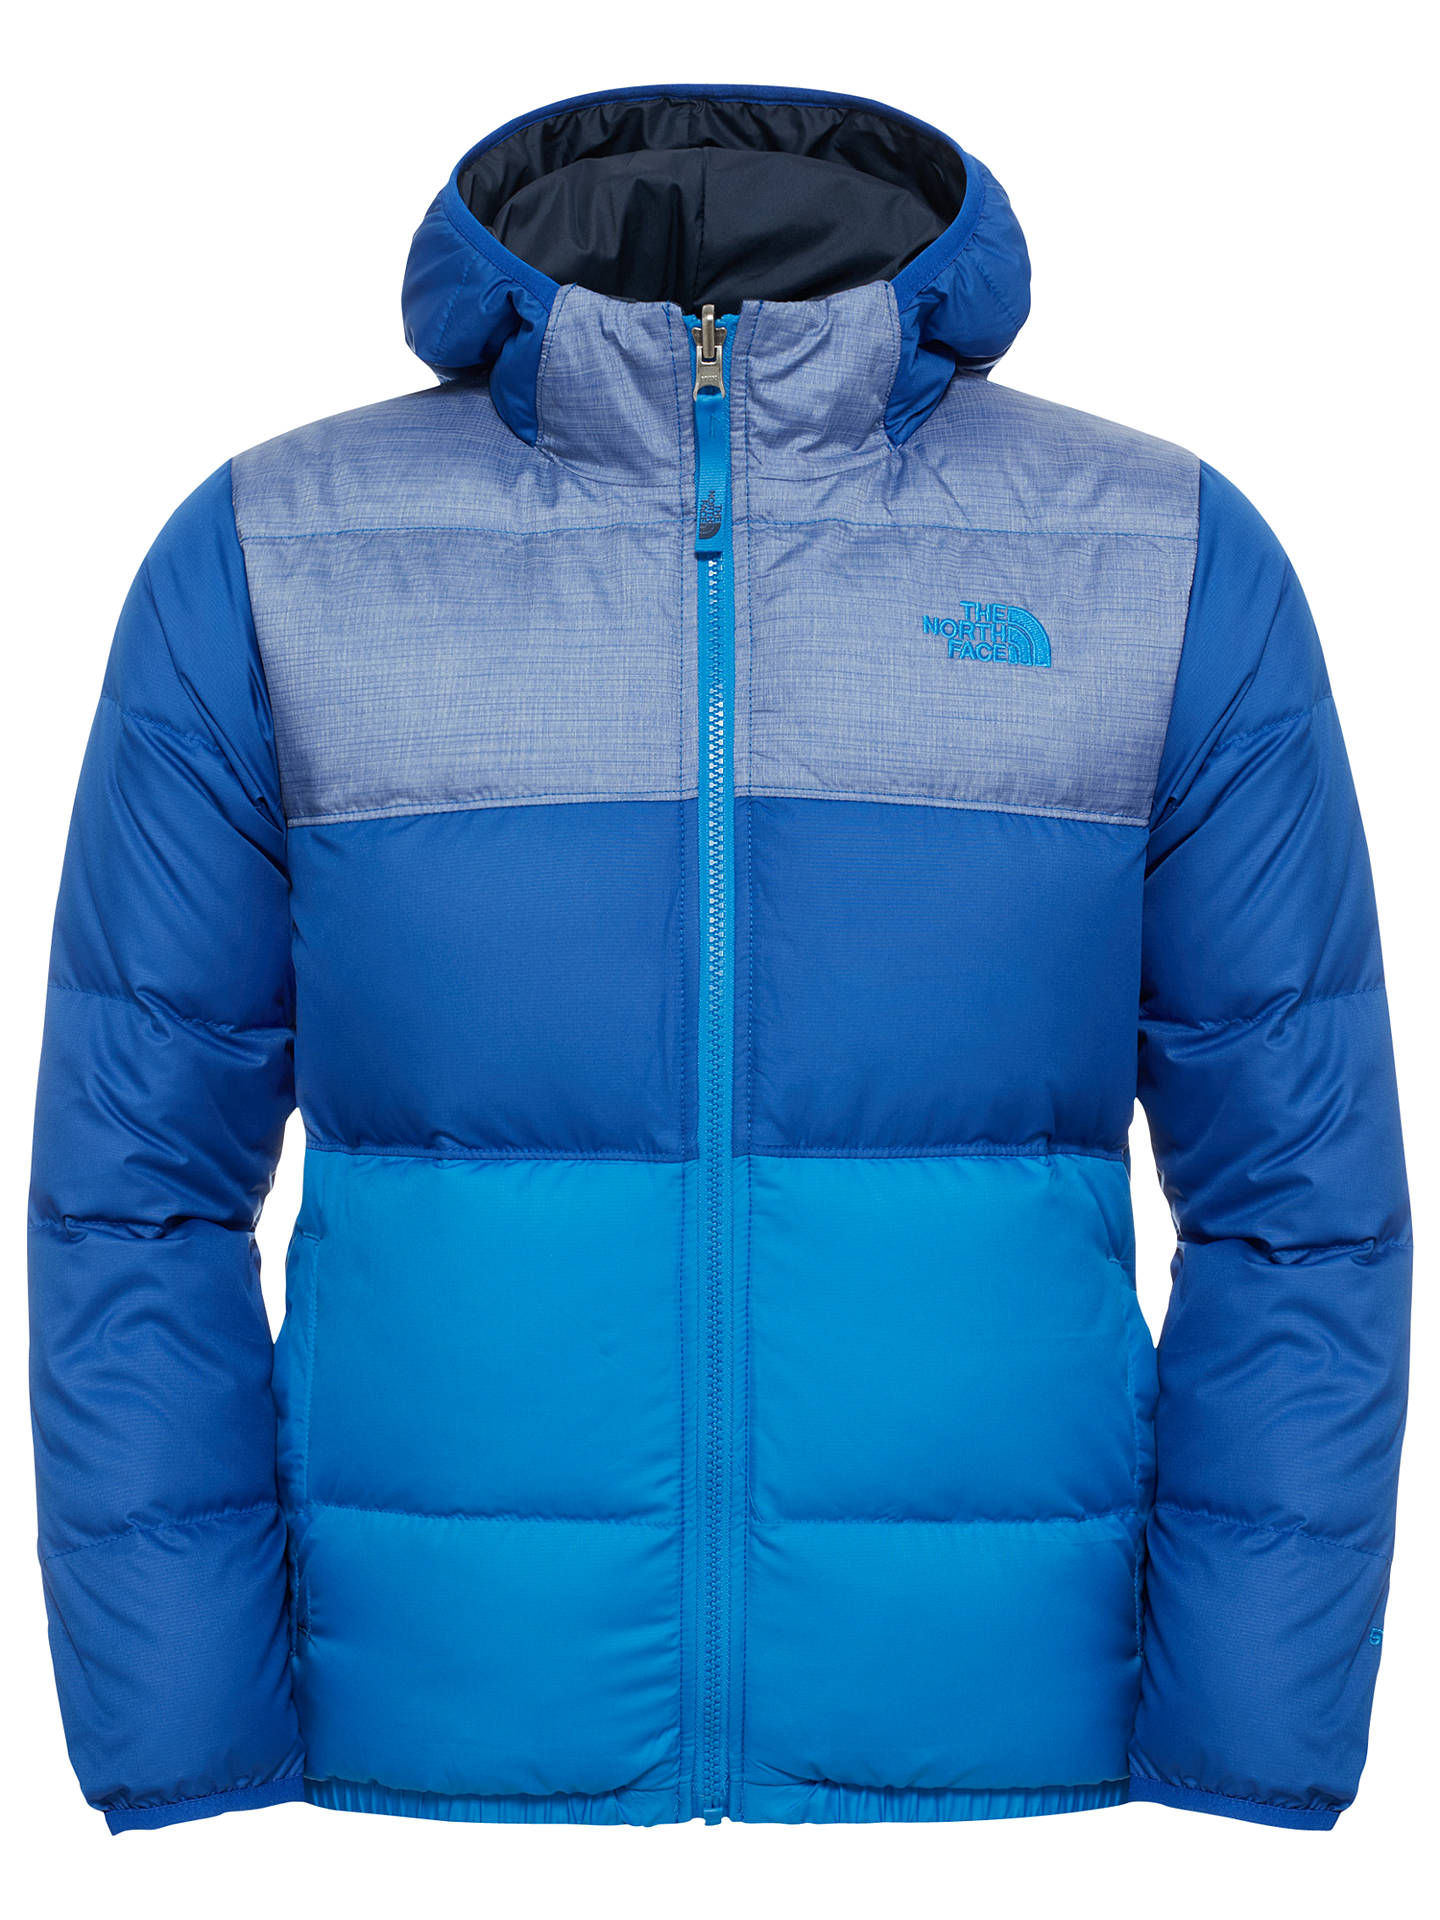 12244265c The North Face Boys' Moondoggy Reversible Water Resistant Jacket ...